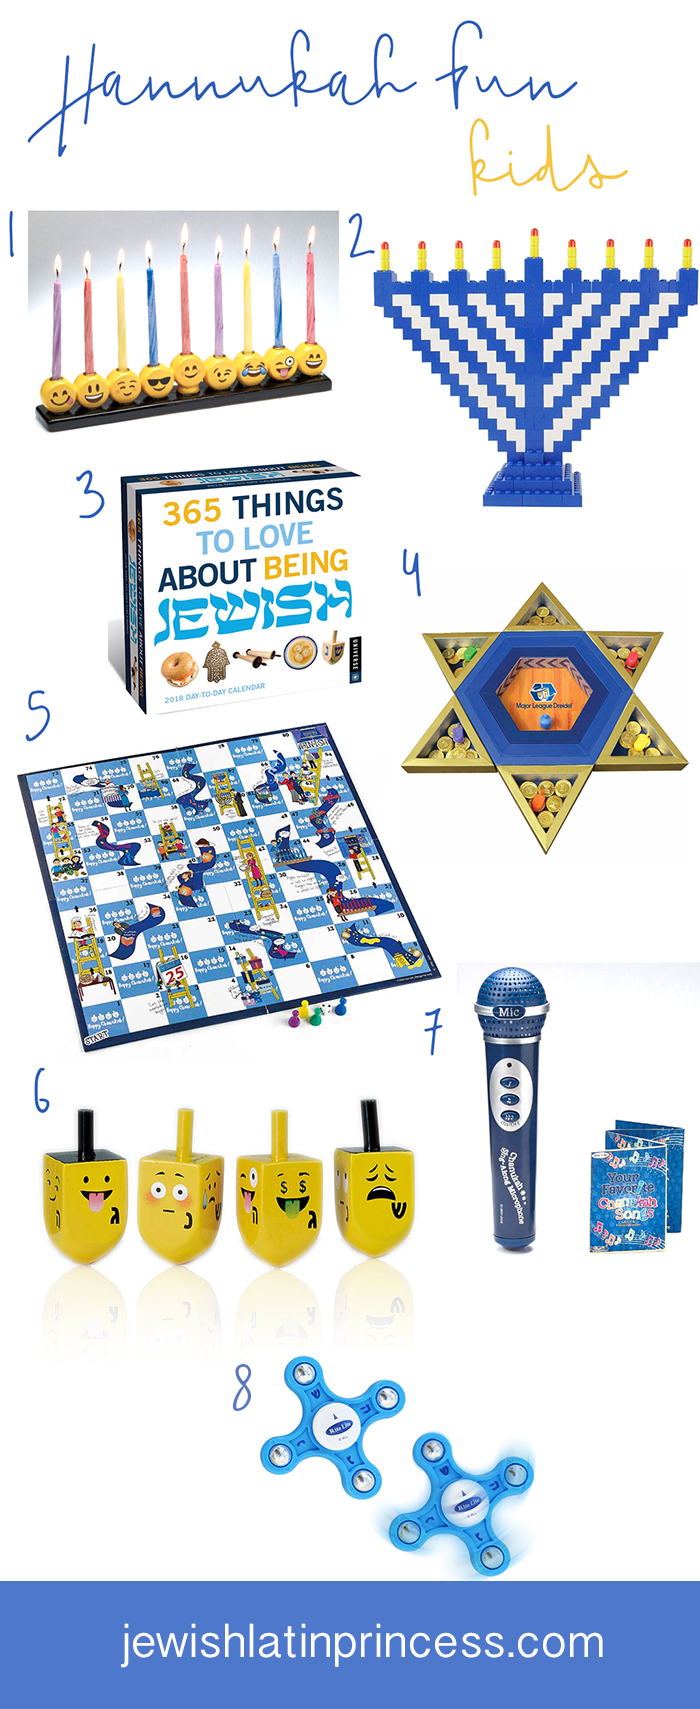 Hannukah Giftts for Kids